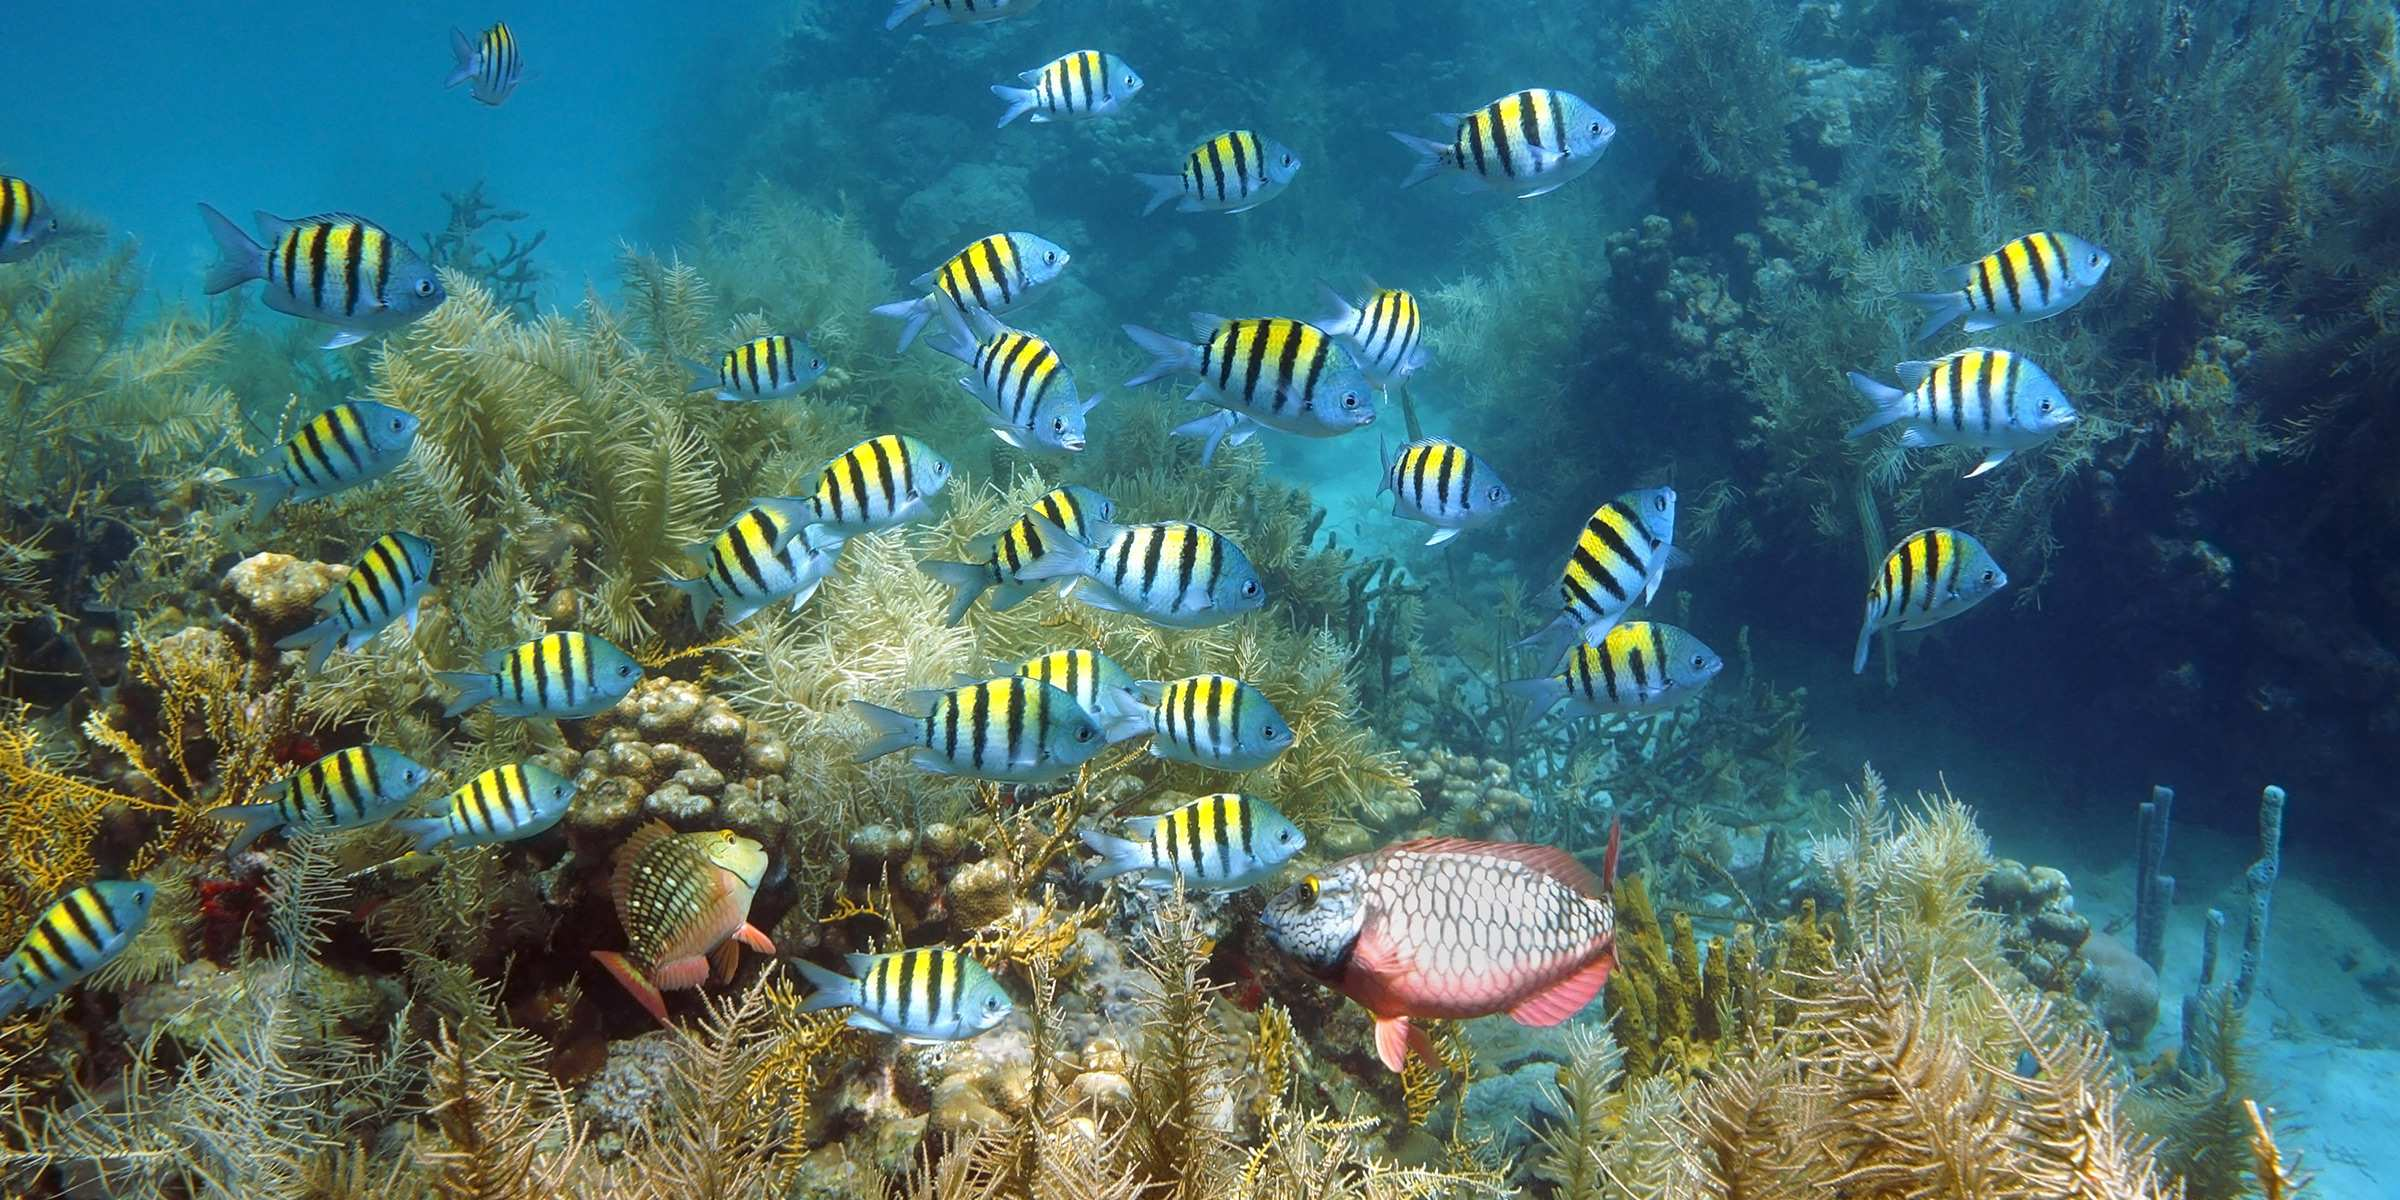 us_tm_3993_0119_blog-diving-martinique-j